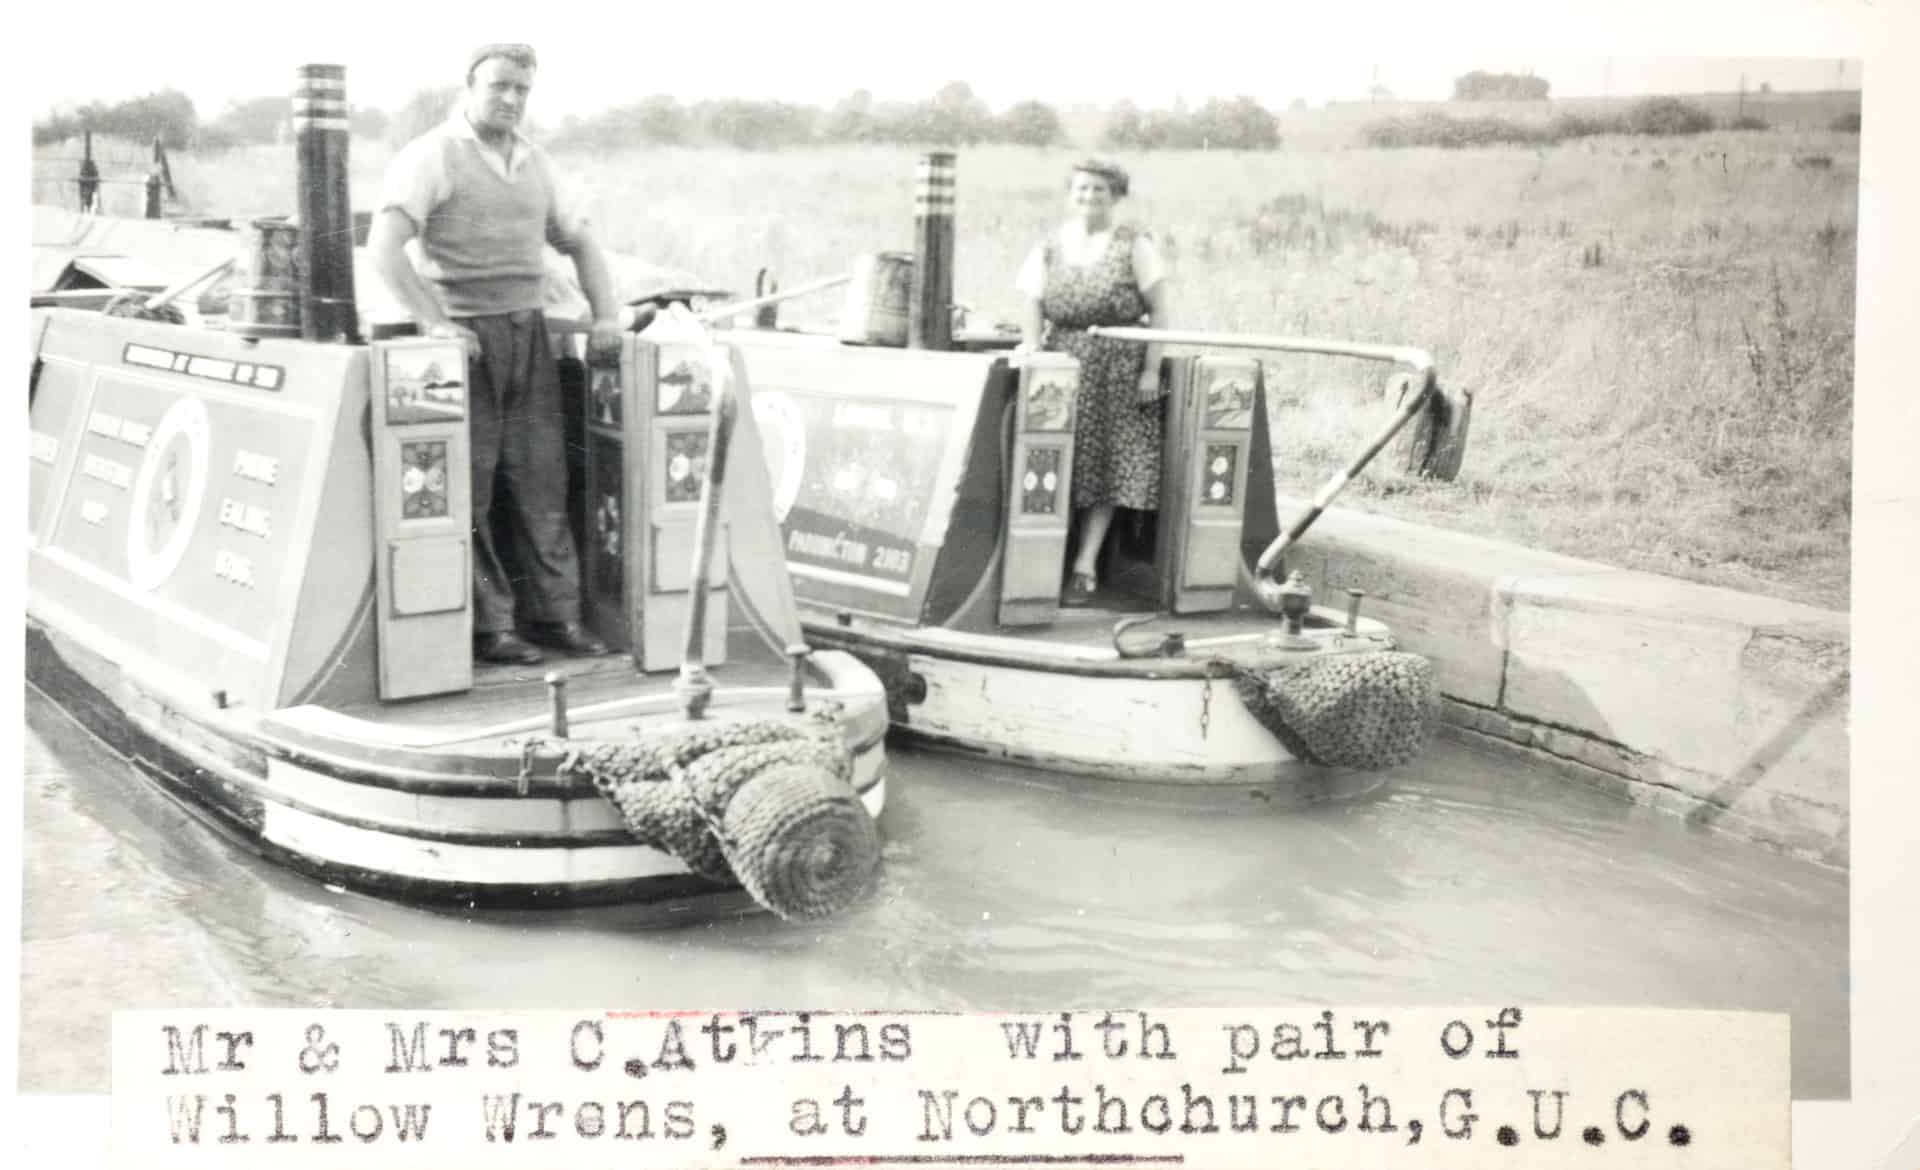 Mr and Mr C.Atkins with a pair of Willow Wrens, at Northchurch, Grand Union Canal c 1050s